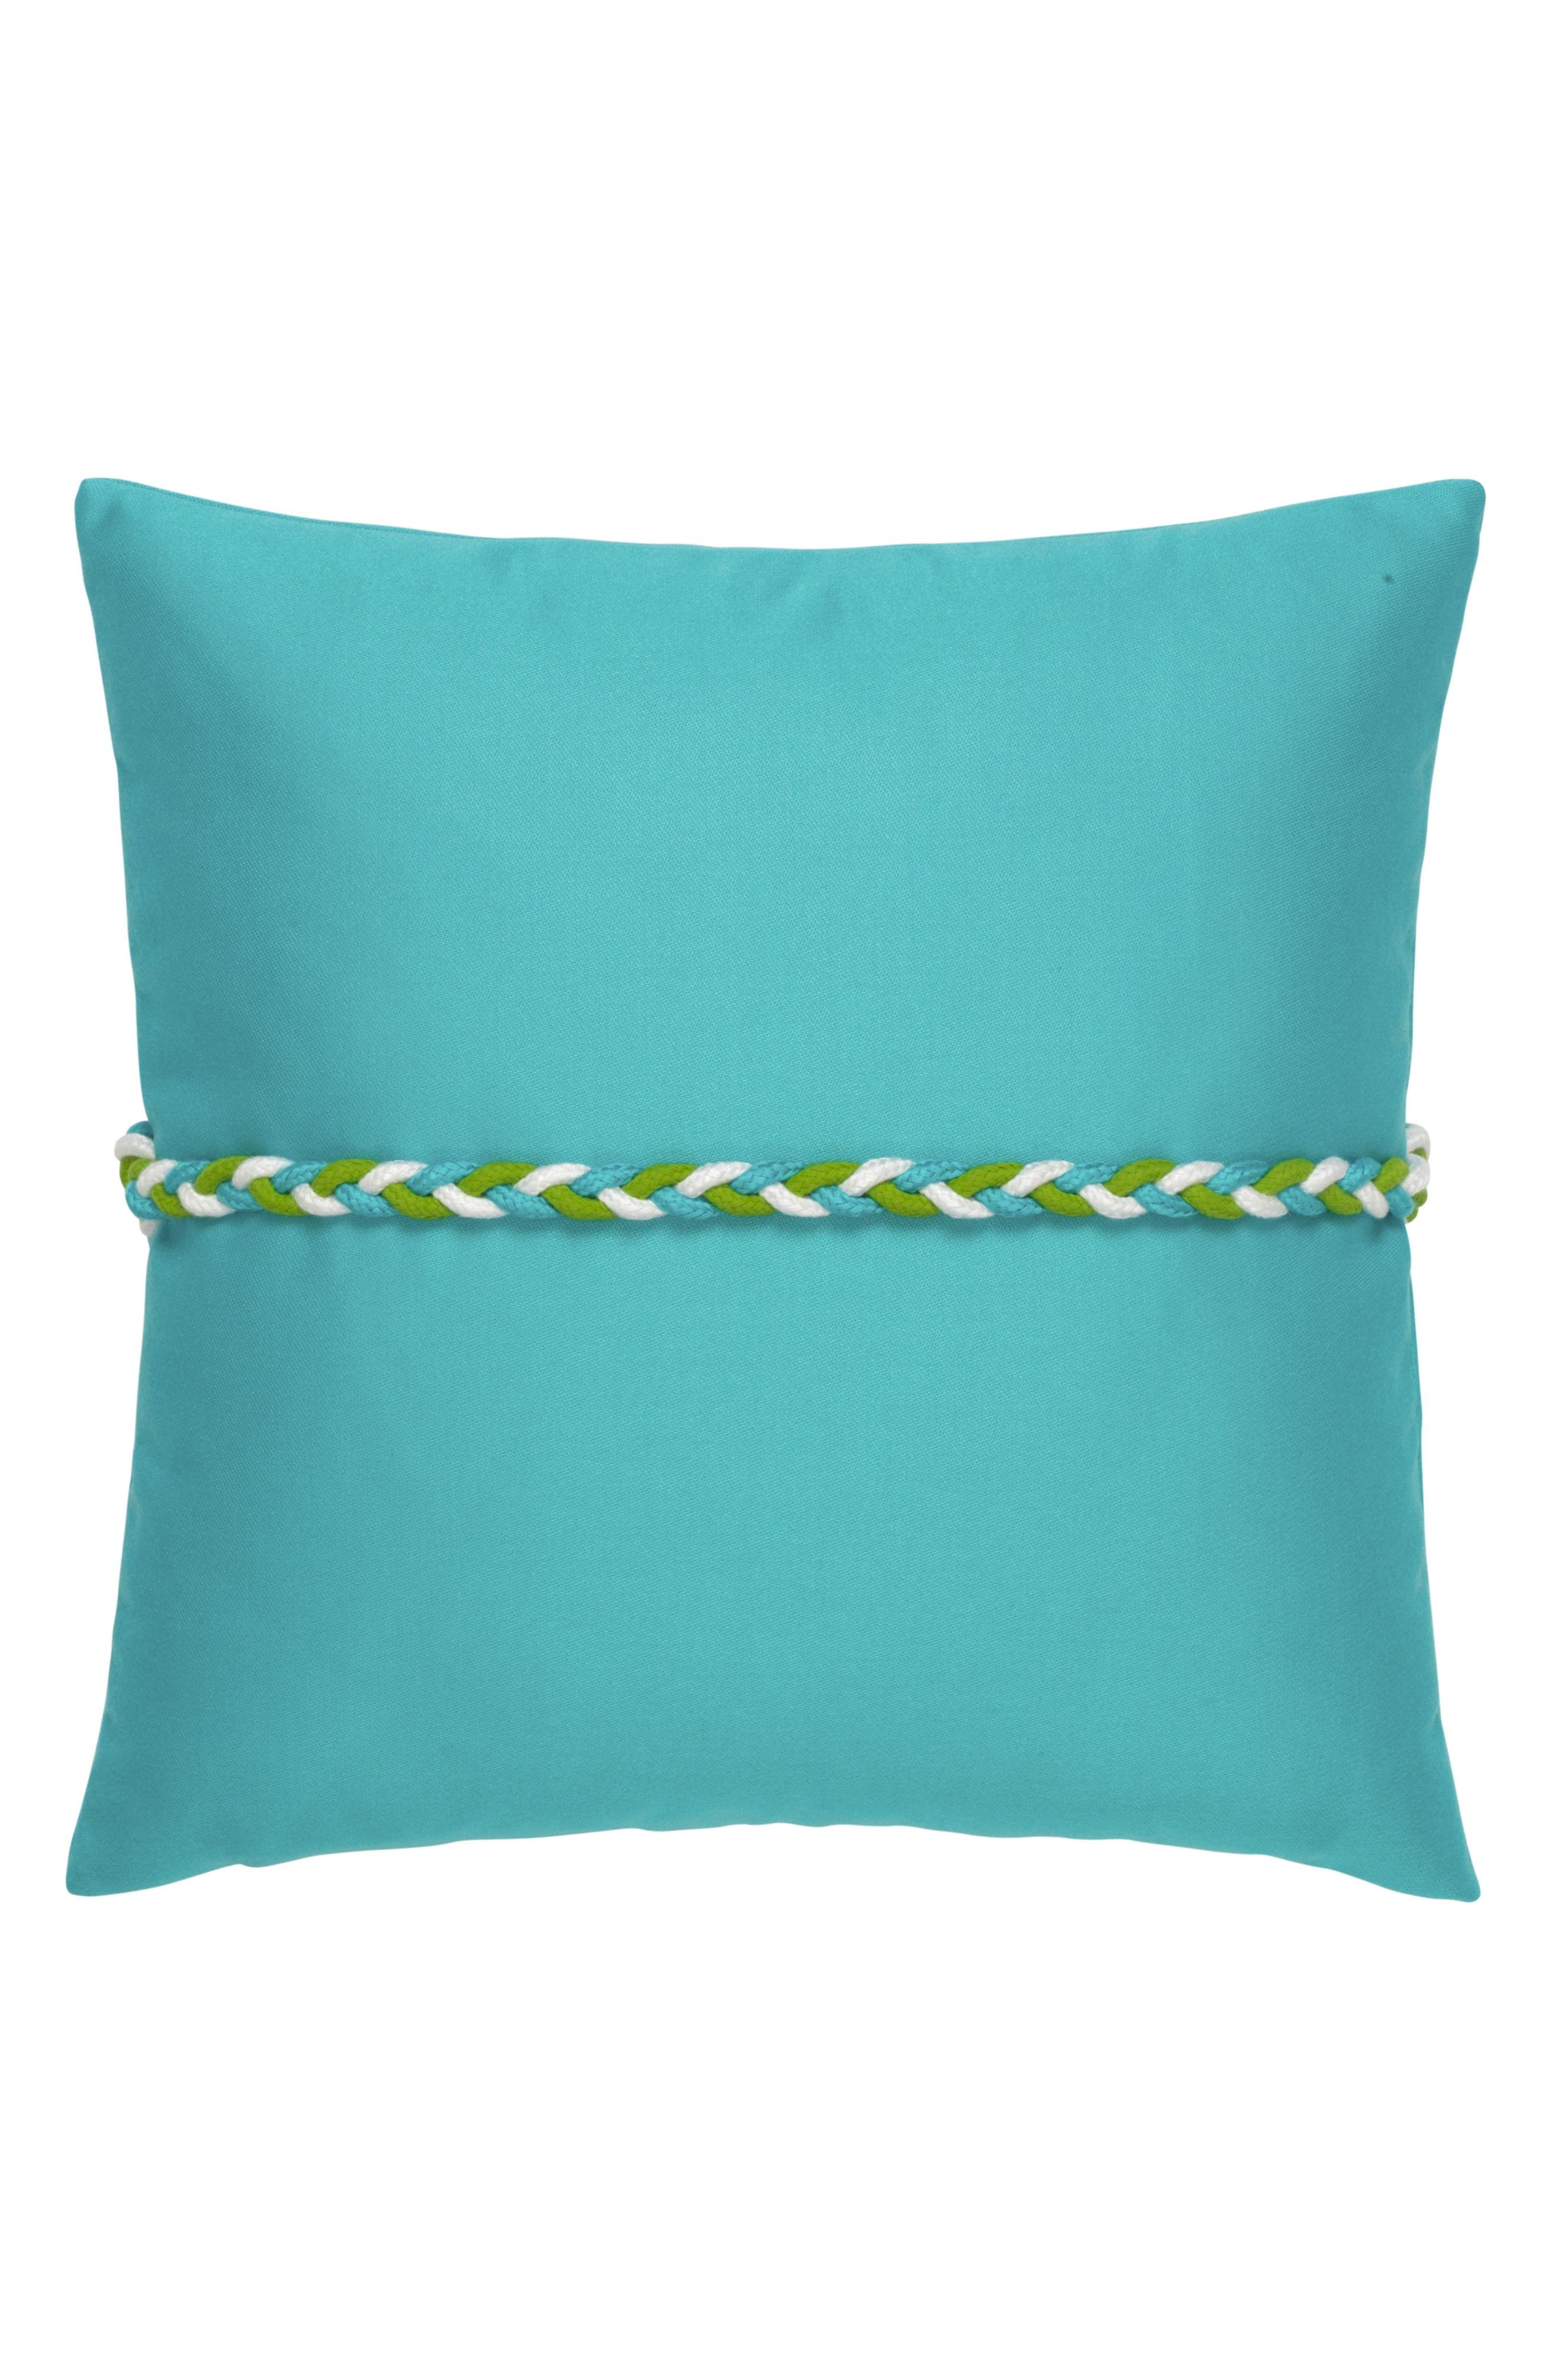 Aruba Frogs Clasp Indoor/Outdoor Accent Pillow,                             Alternate thumbnail 2, color,                             Blue